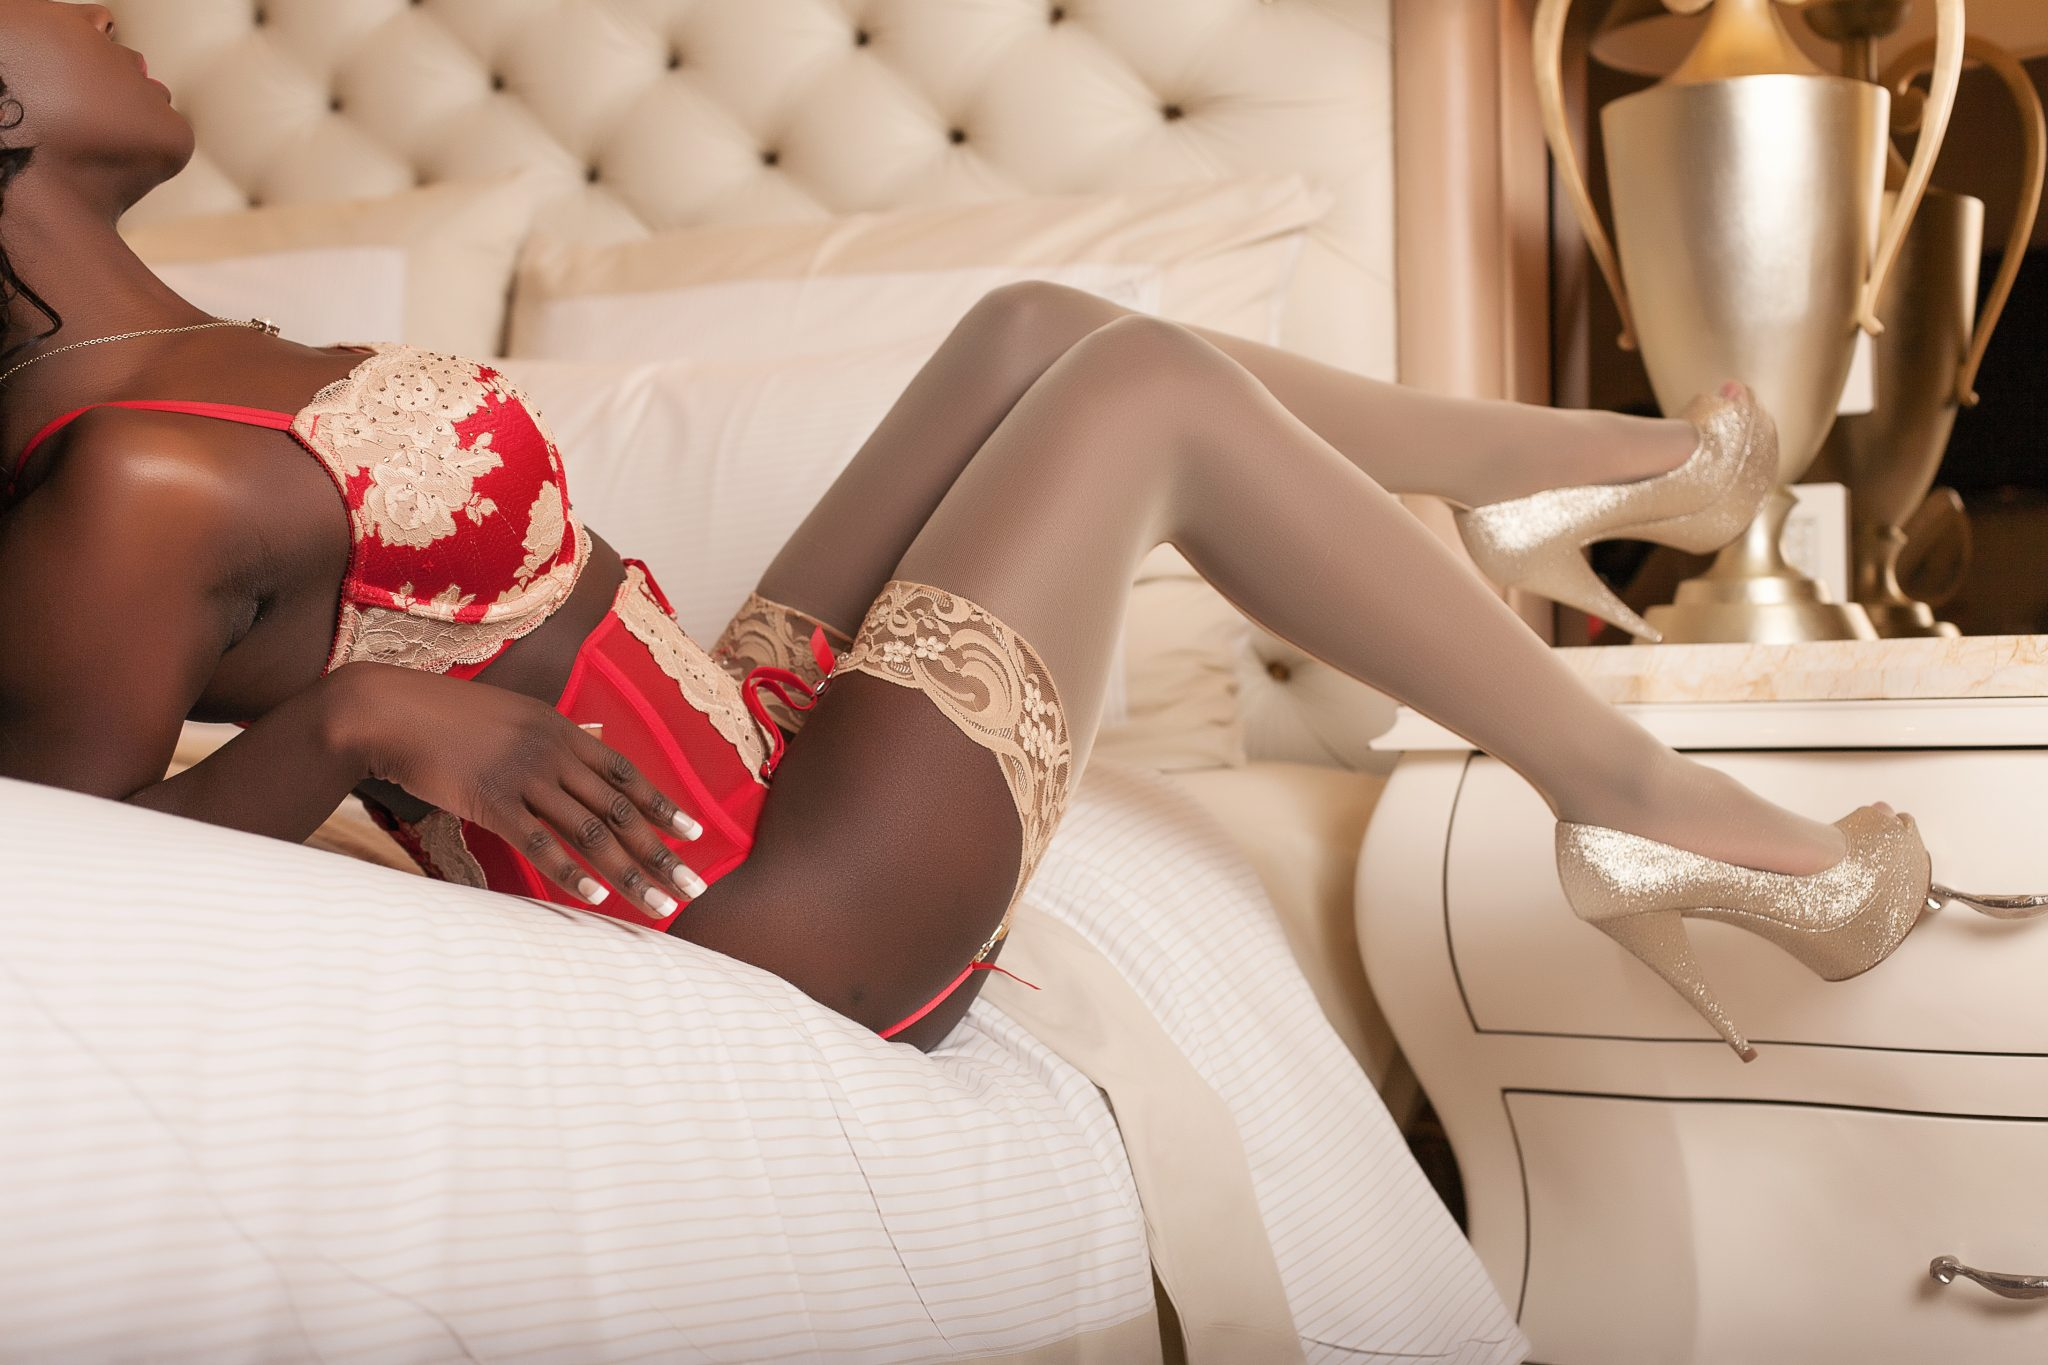 Beautiful ingerie set and pose in intimate boudoir session in Vegas with Stacie Frazier of Haute Shots.